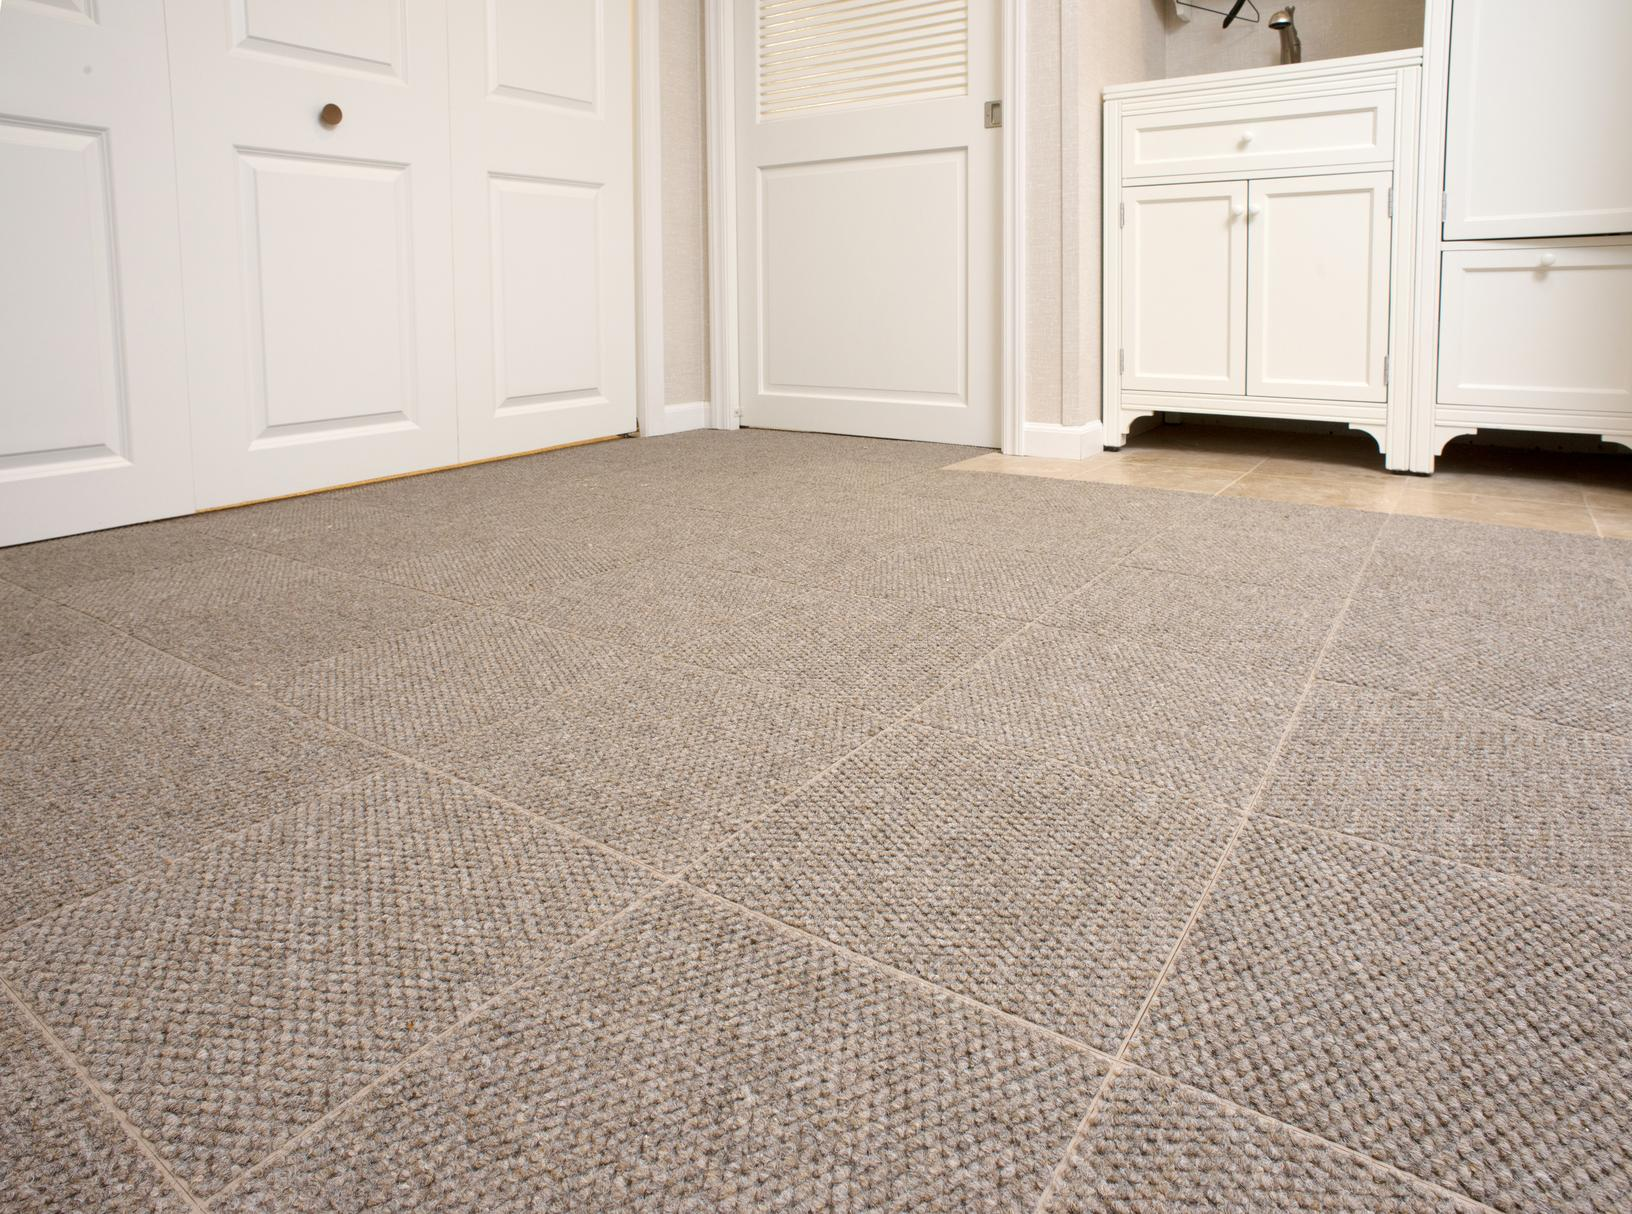 High Quality Total Basement Finishing Flooring in Yonkers